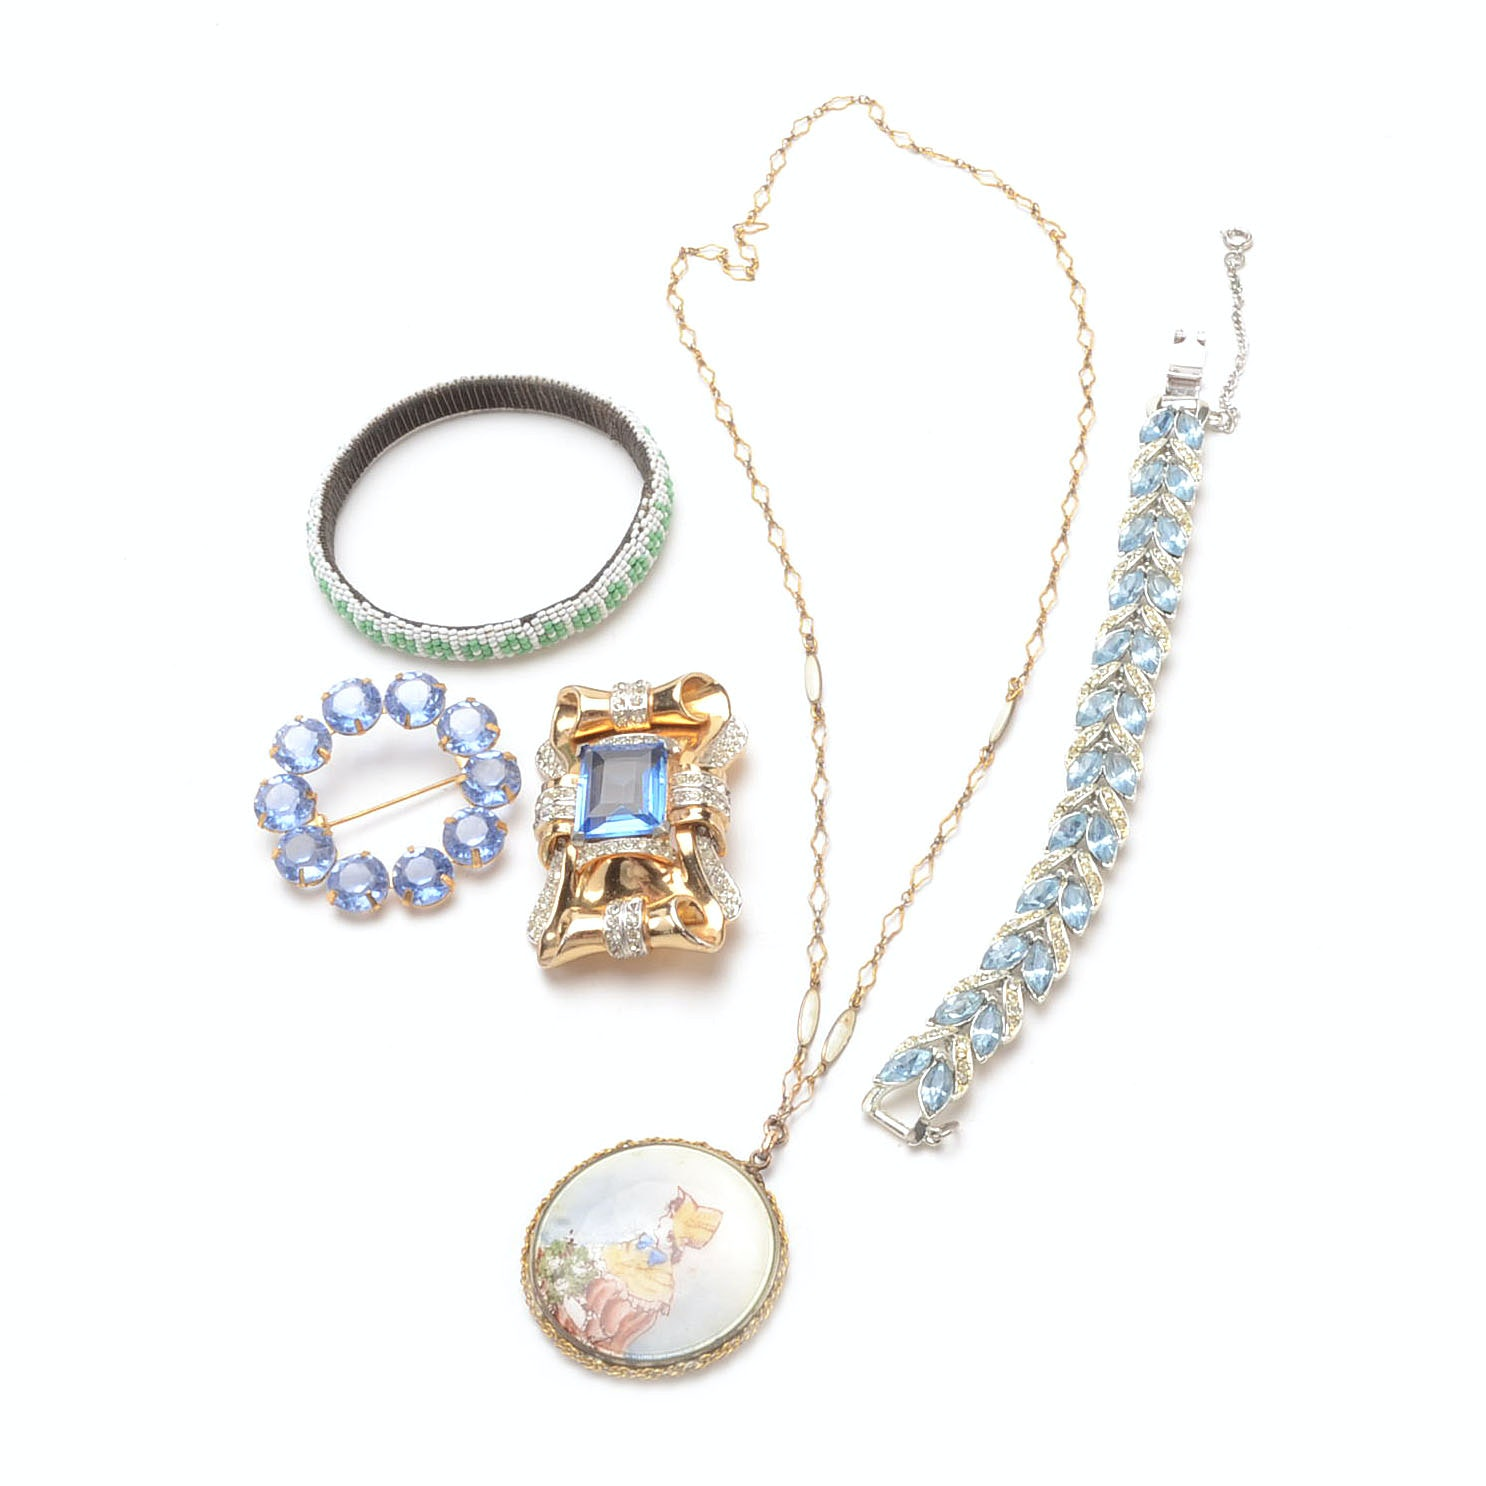 Vintage Costume Jewelry Collection Including Coro